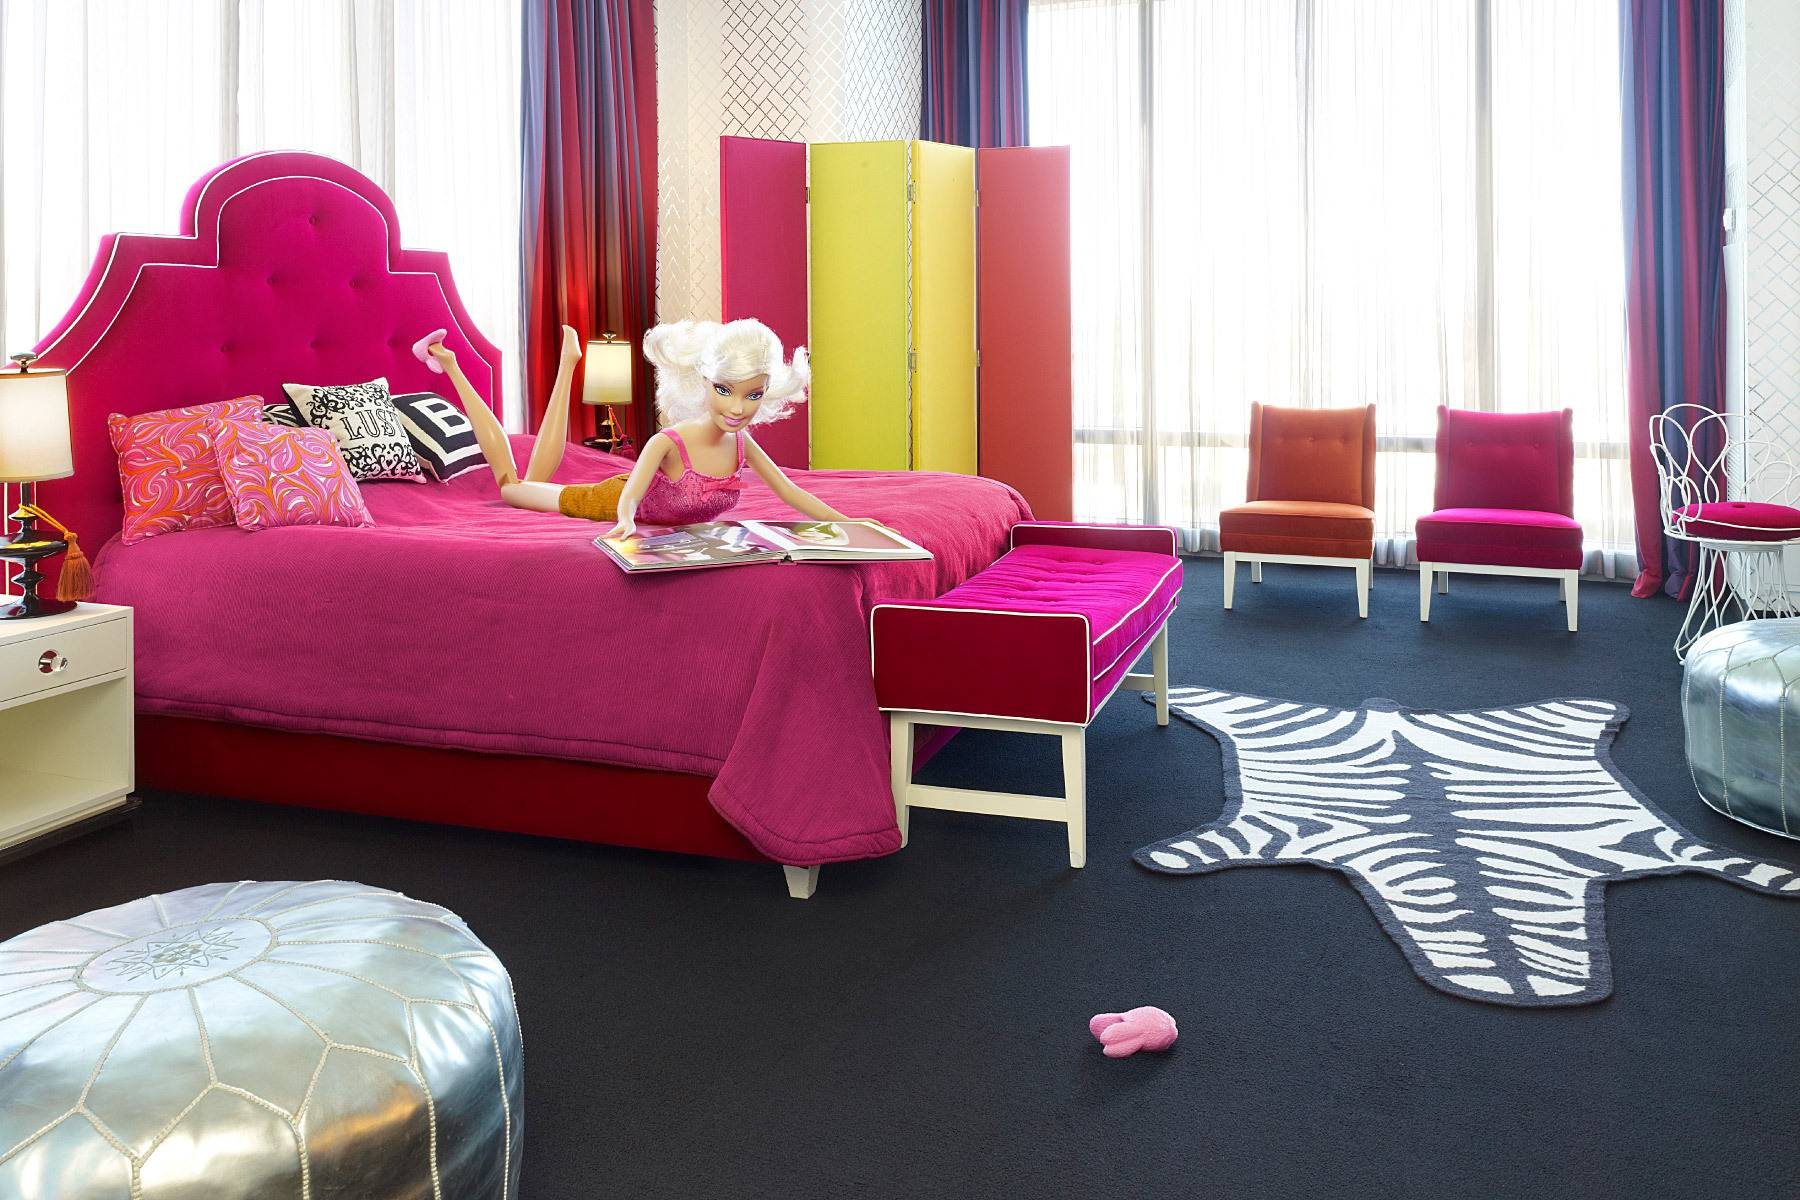 Resultado de imagen para Barbie / The Palms Casino Resort Barbie Suite